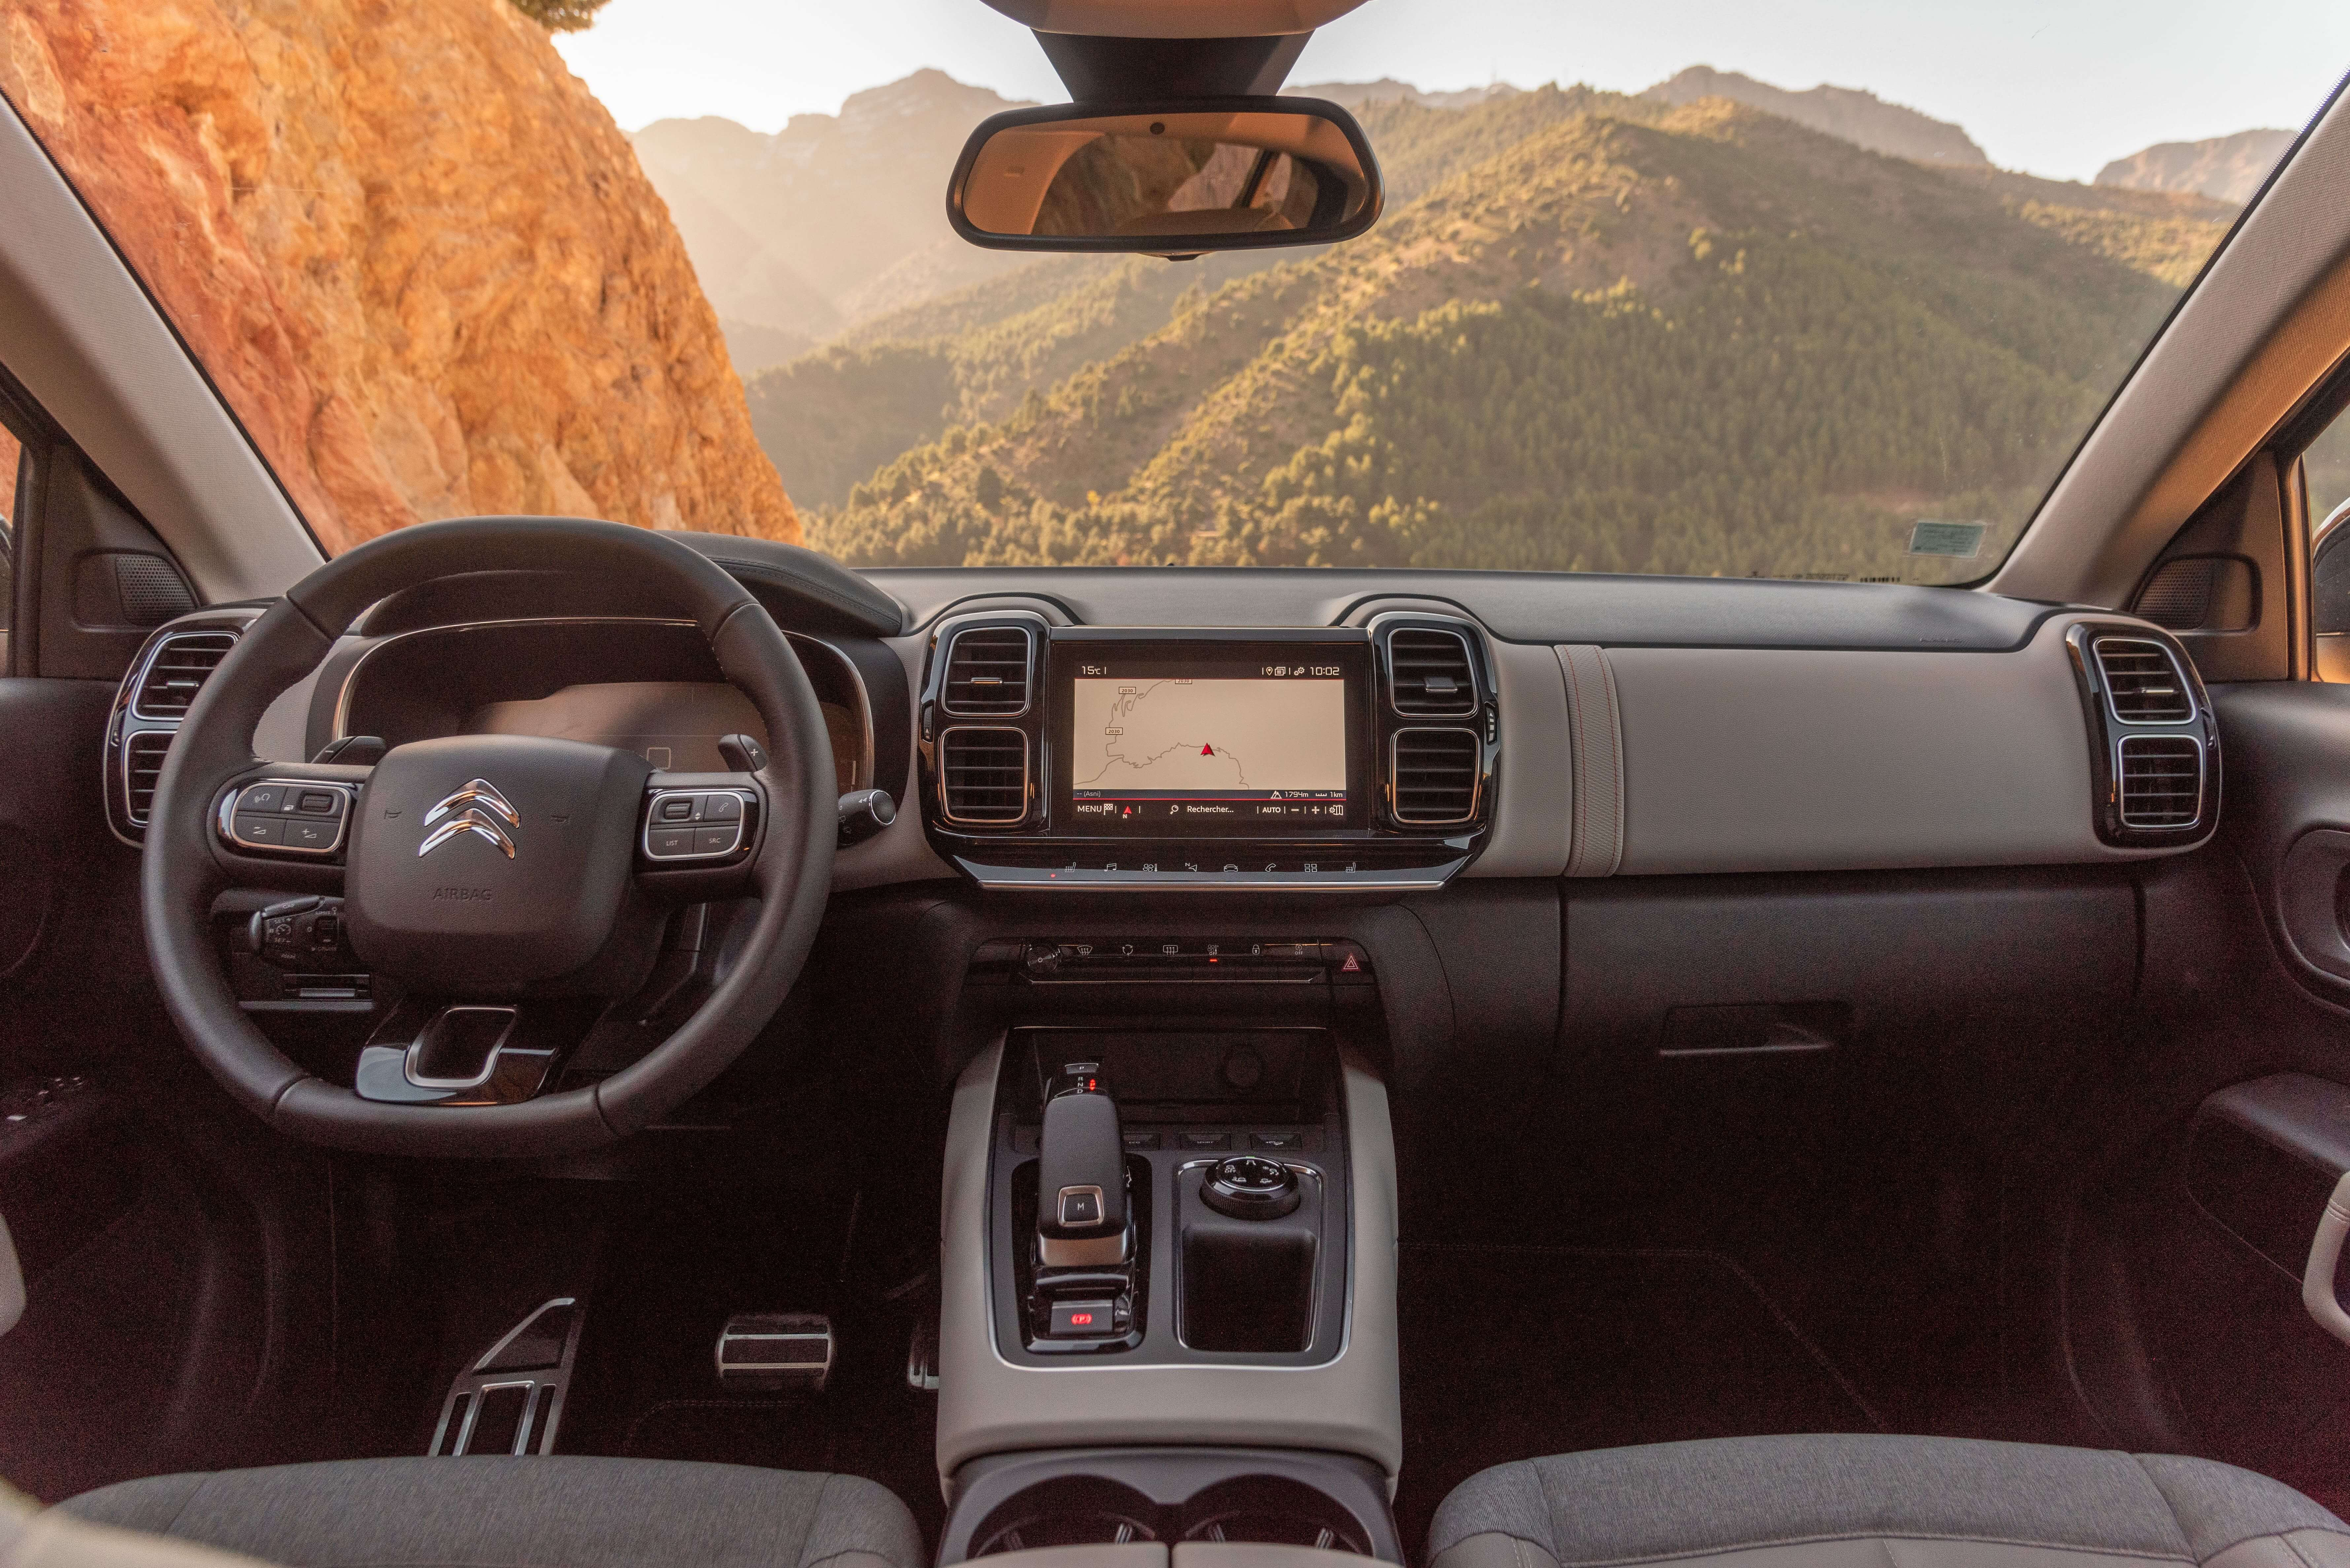 , Test: Citroën C5 Aircross 2019, Travelguide.at